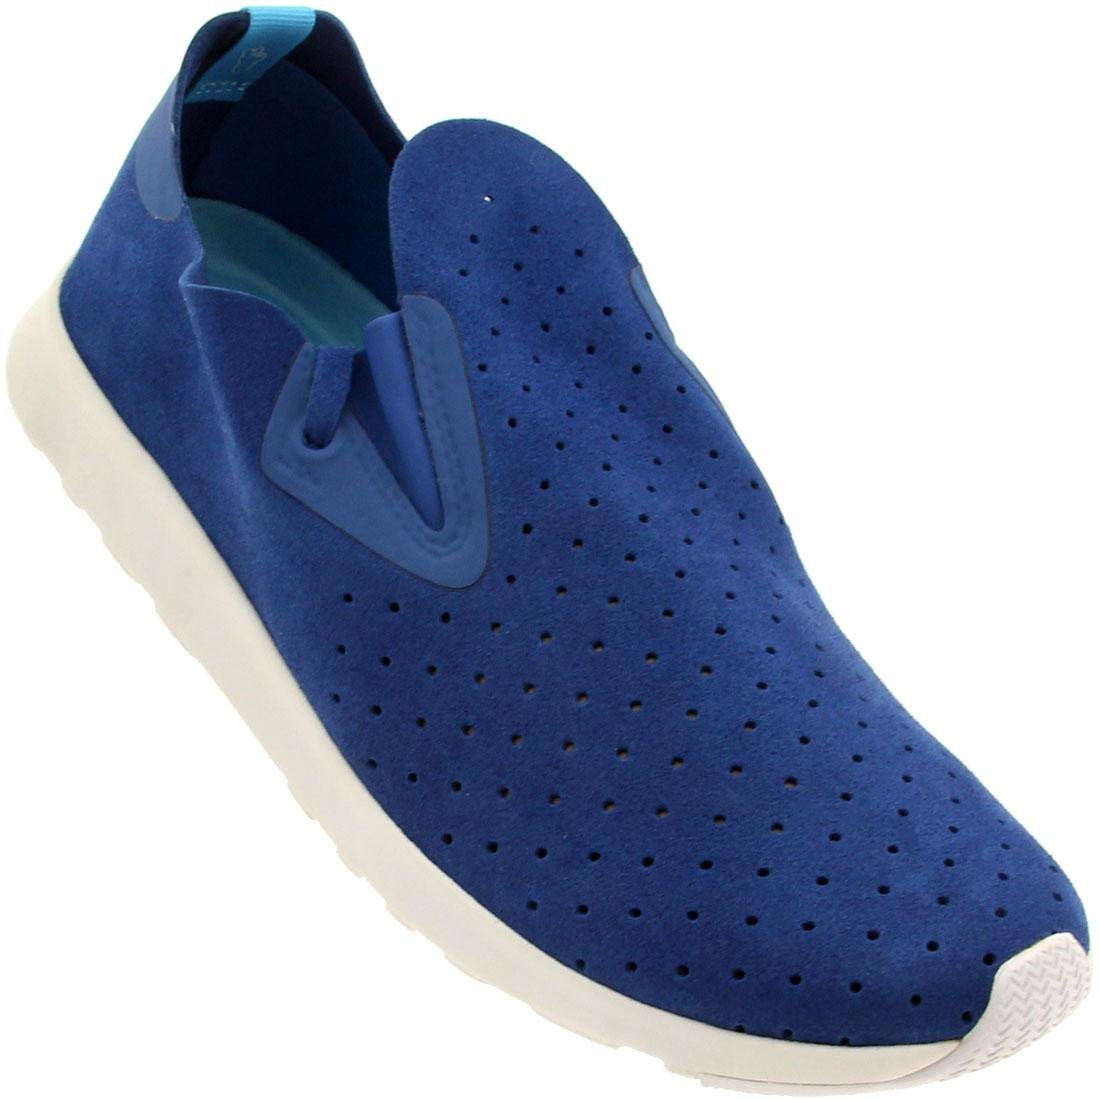 Native Unisex Apollo Moc Fashion Sneaker. B00L5KLQYI 11 B(M) US Women / 9 D(M) US Men|Victoria Blue/Shell White Rubber